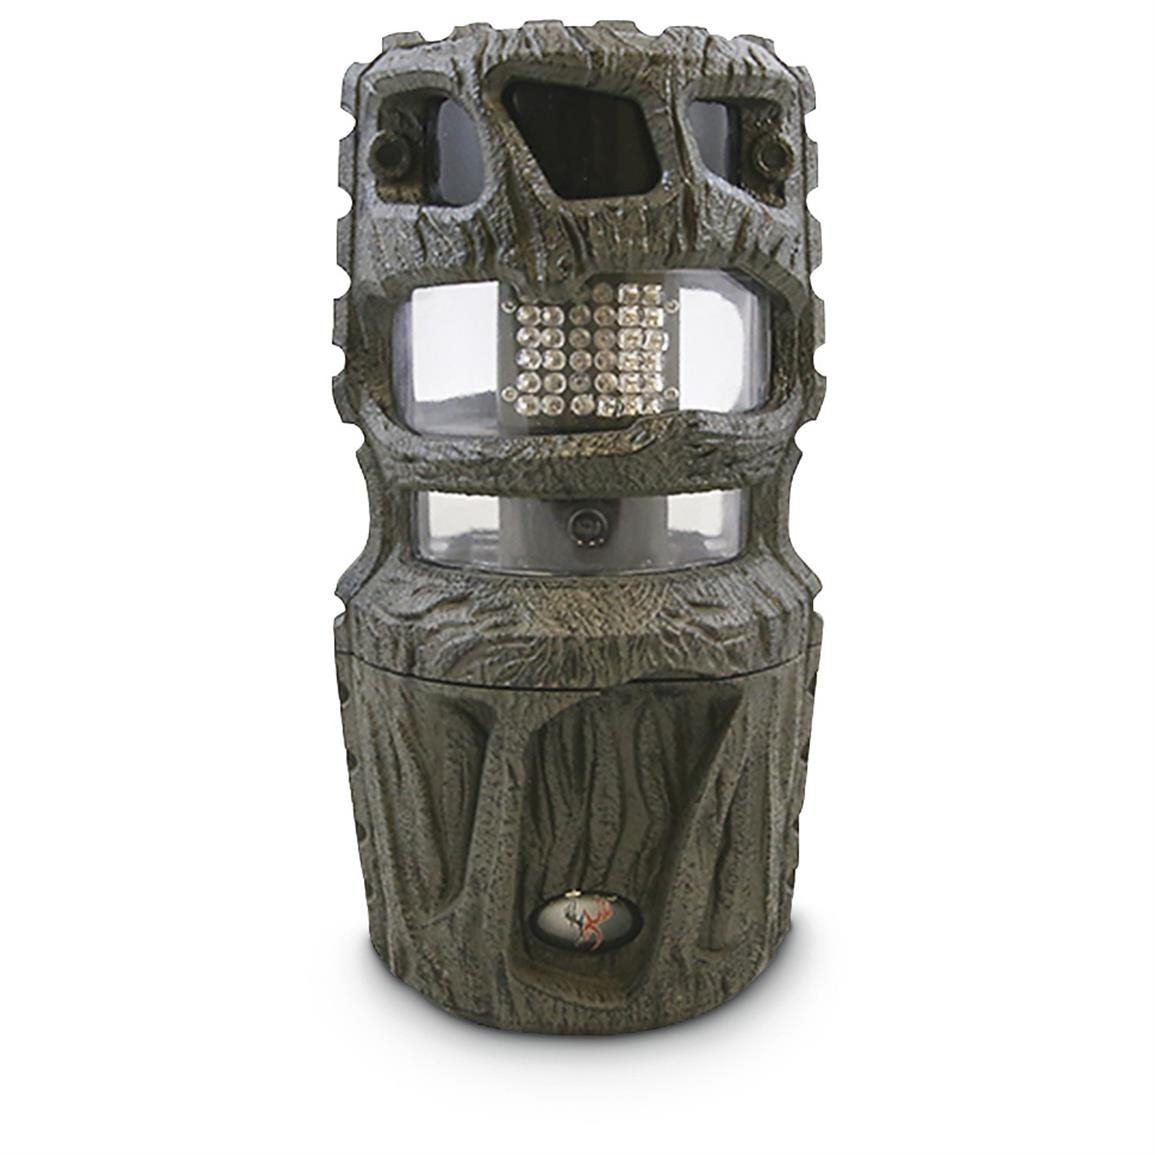 Wildgame Innovations 360 Degree Trail Camera